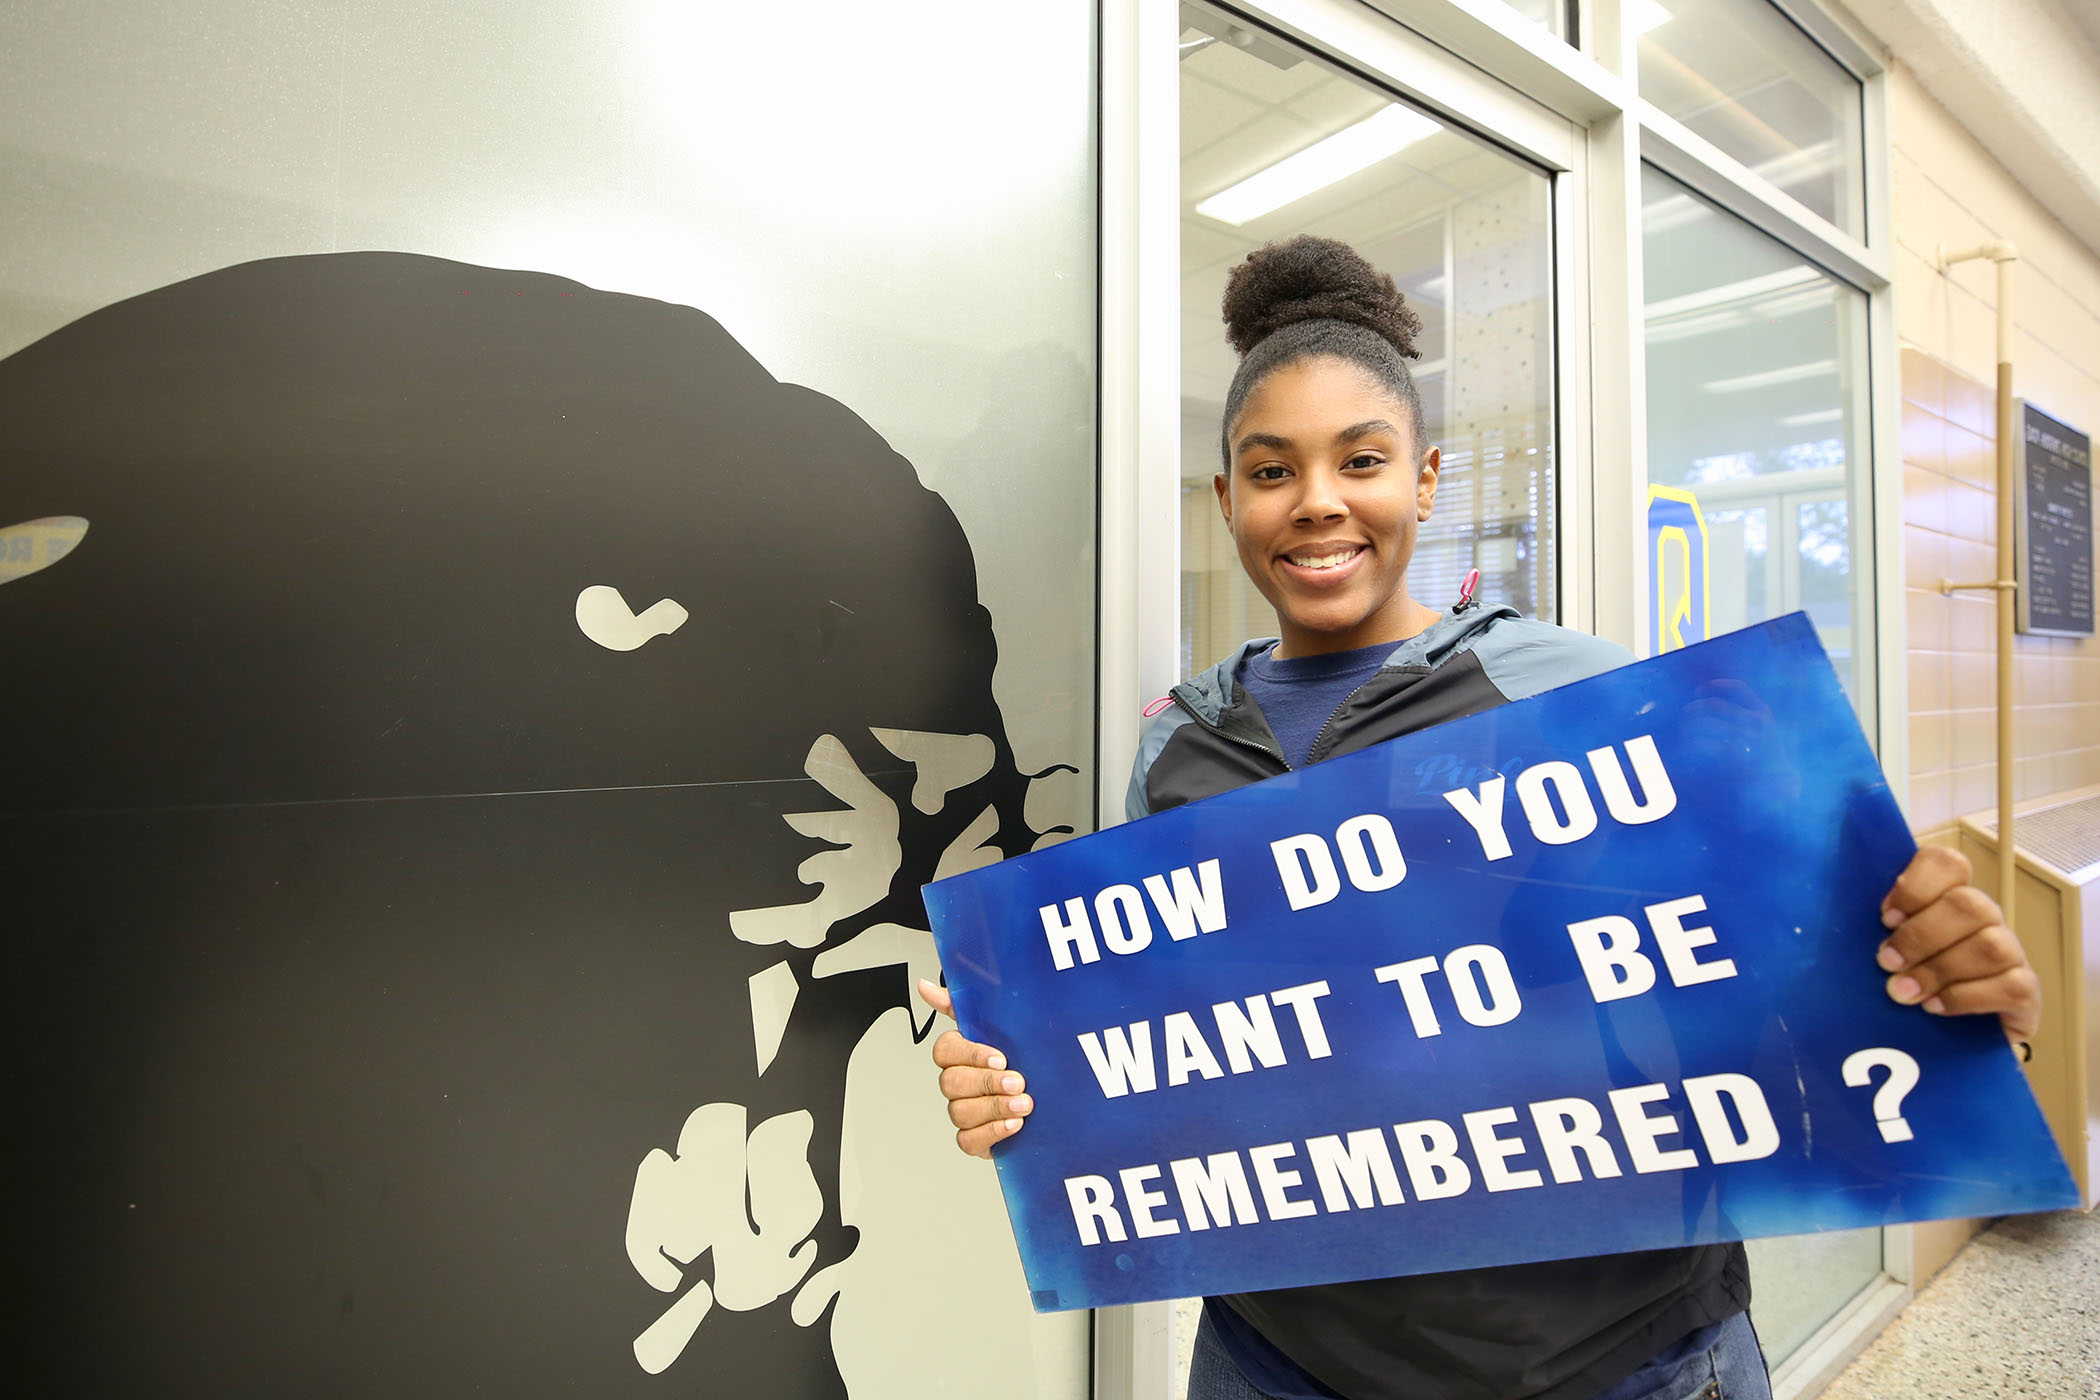 """Sayjah poses with a sign which asks, """"How do you want to be remembered?"""""""